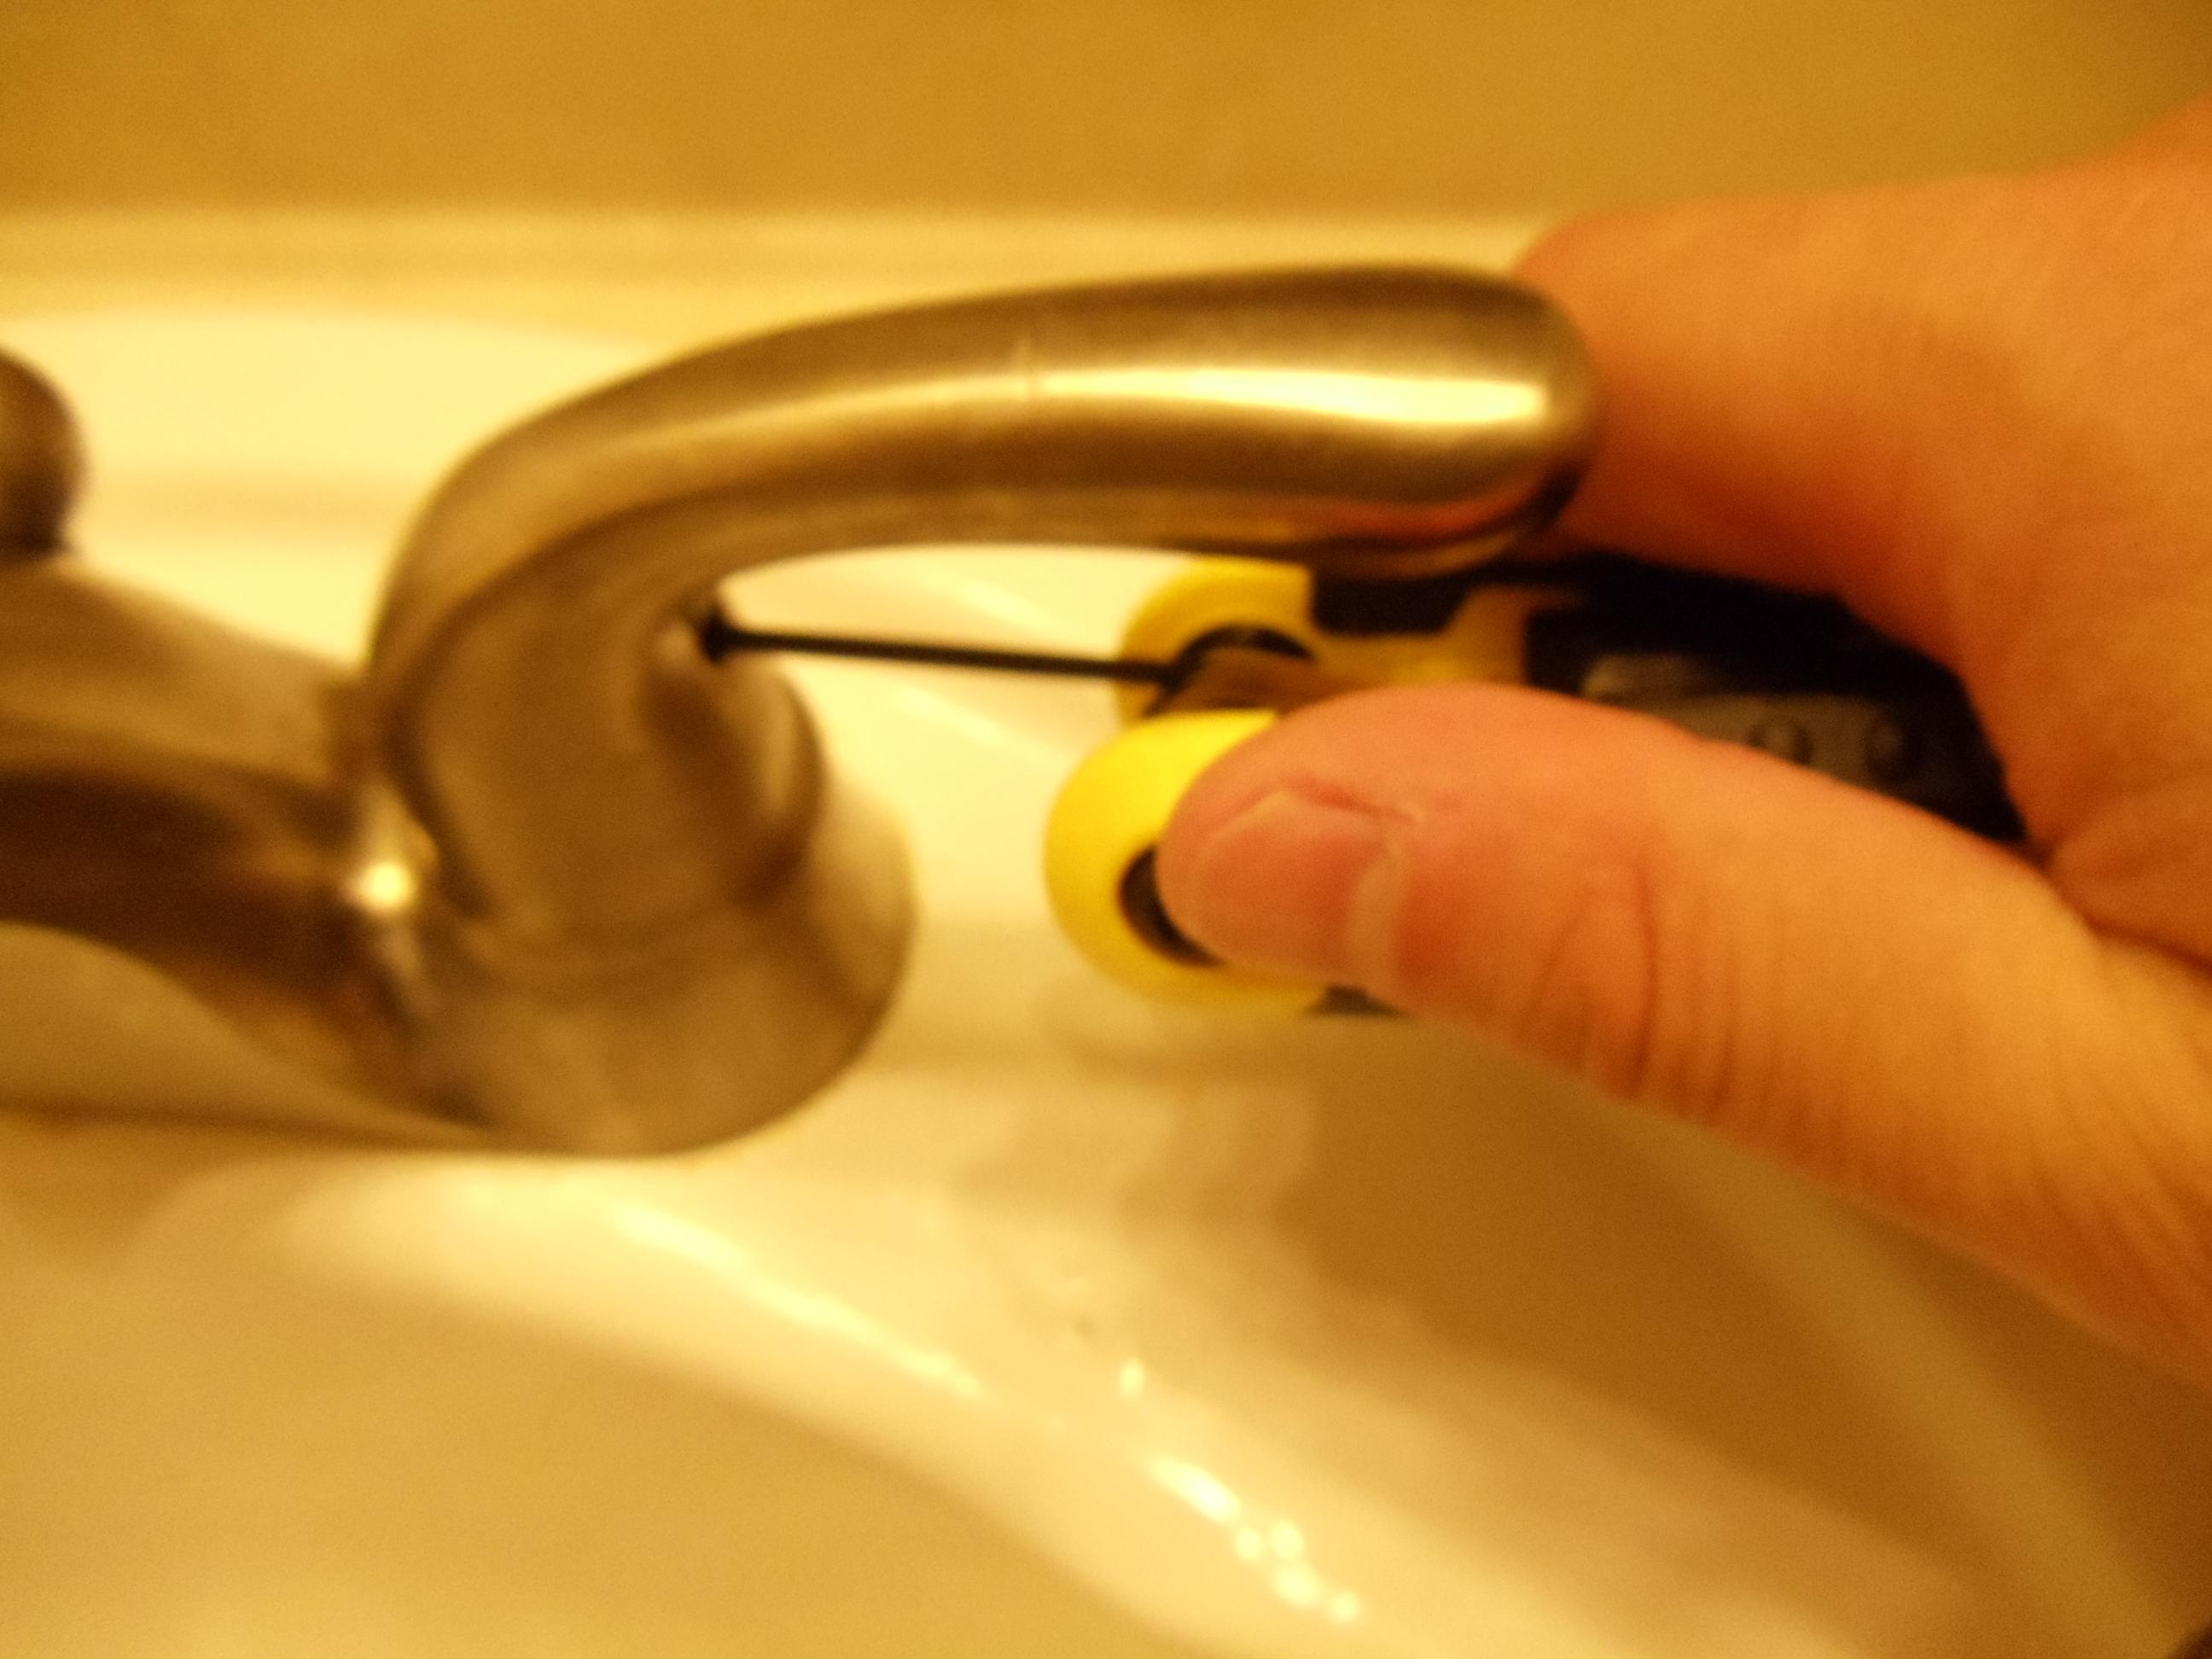 How to Fix a Leaking Glacier Bay Bathroom Sink Faucet - DIY Home Repair